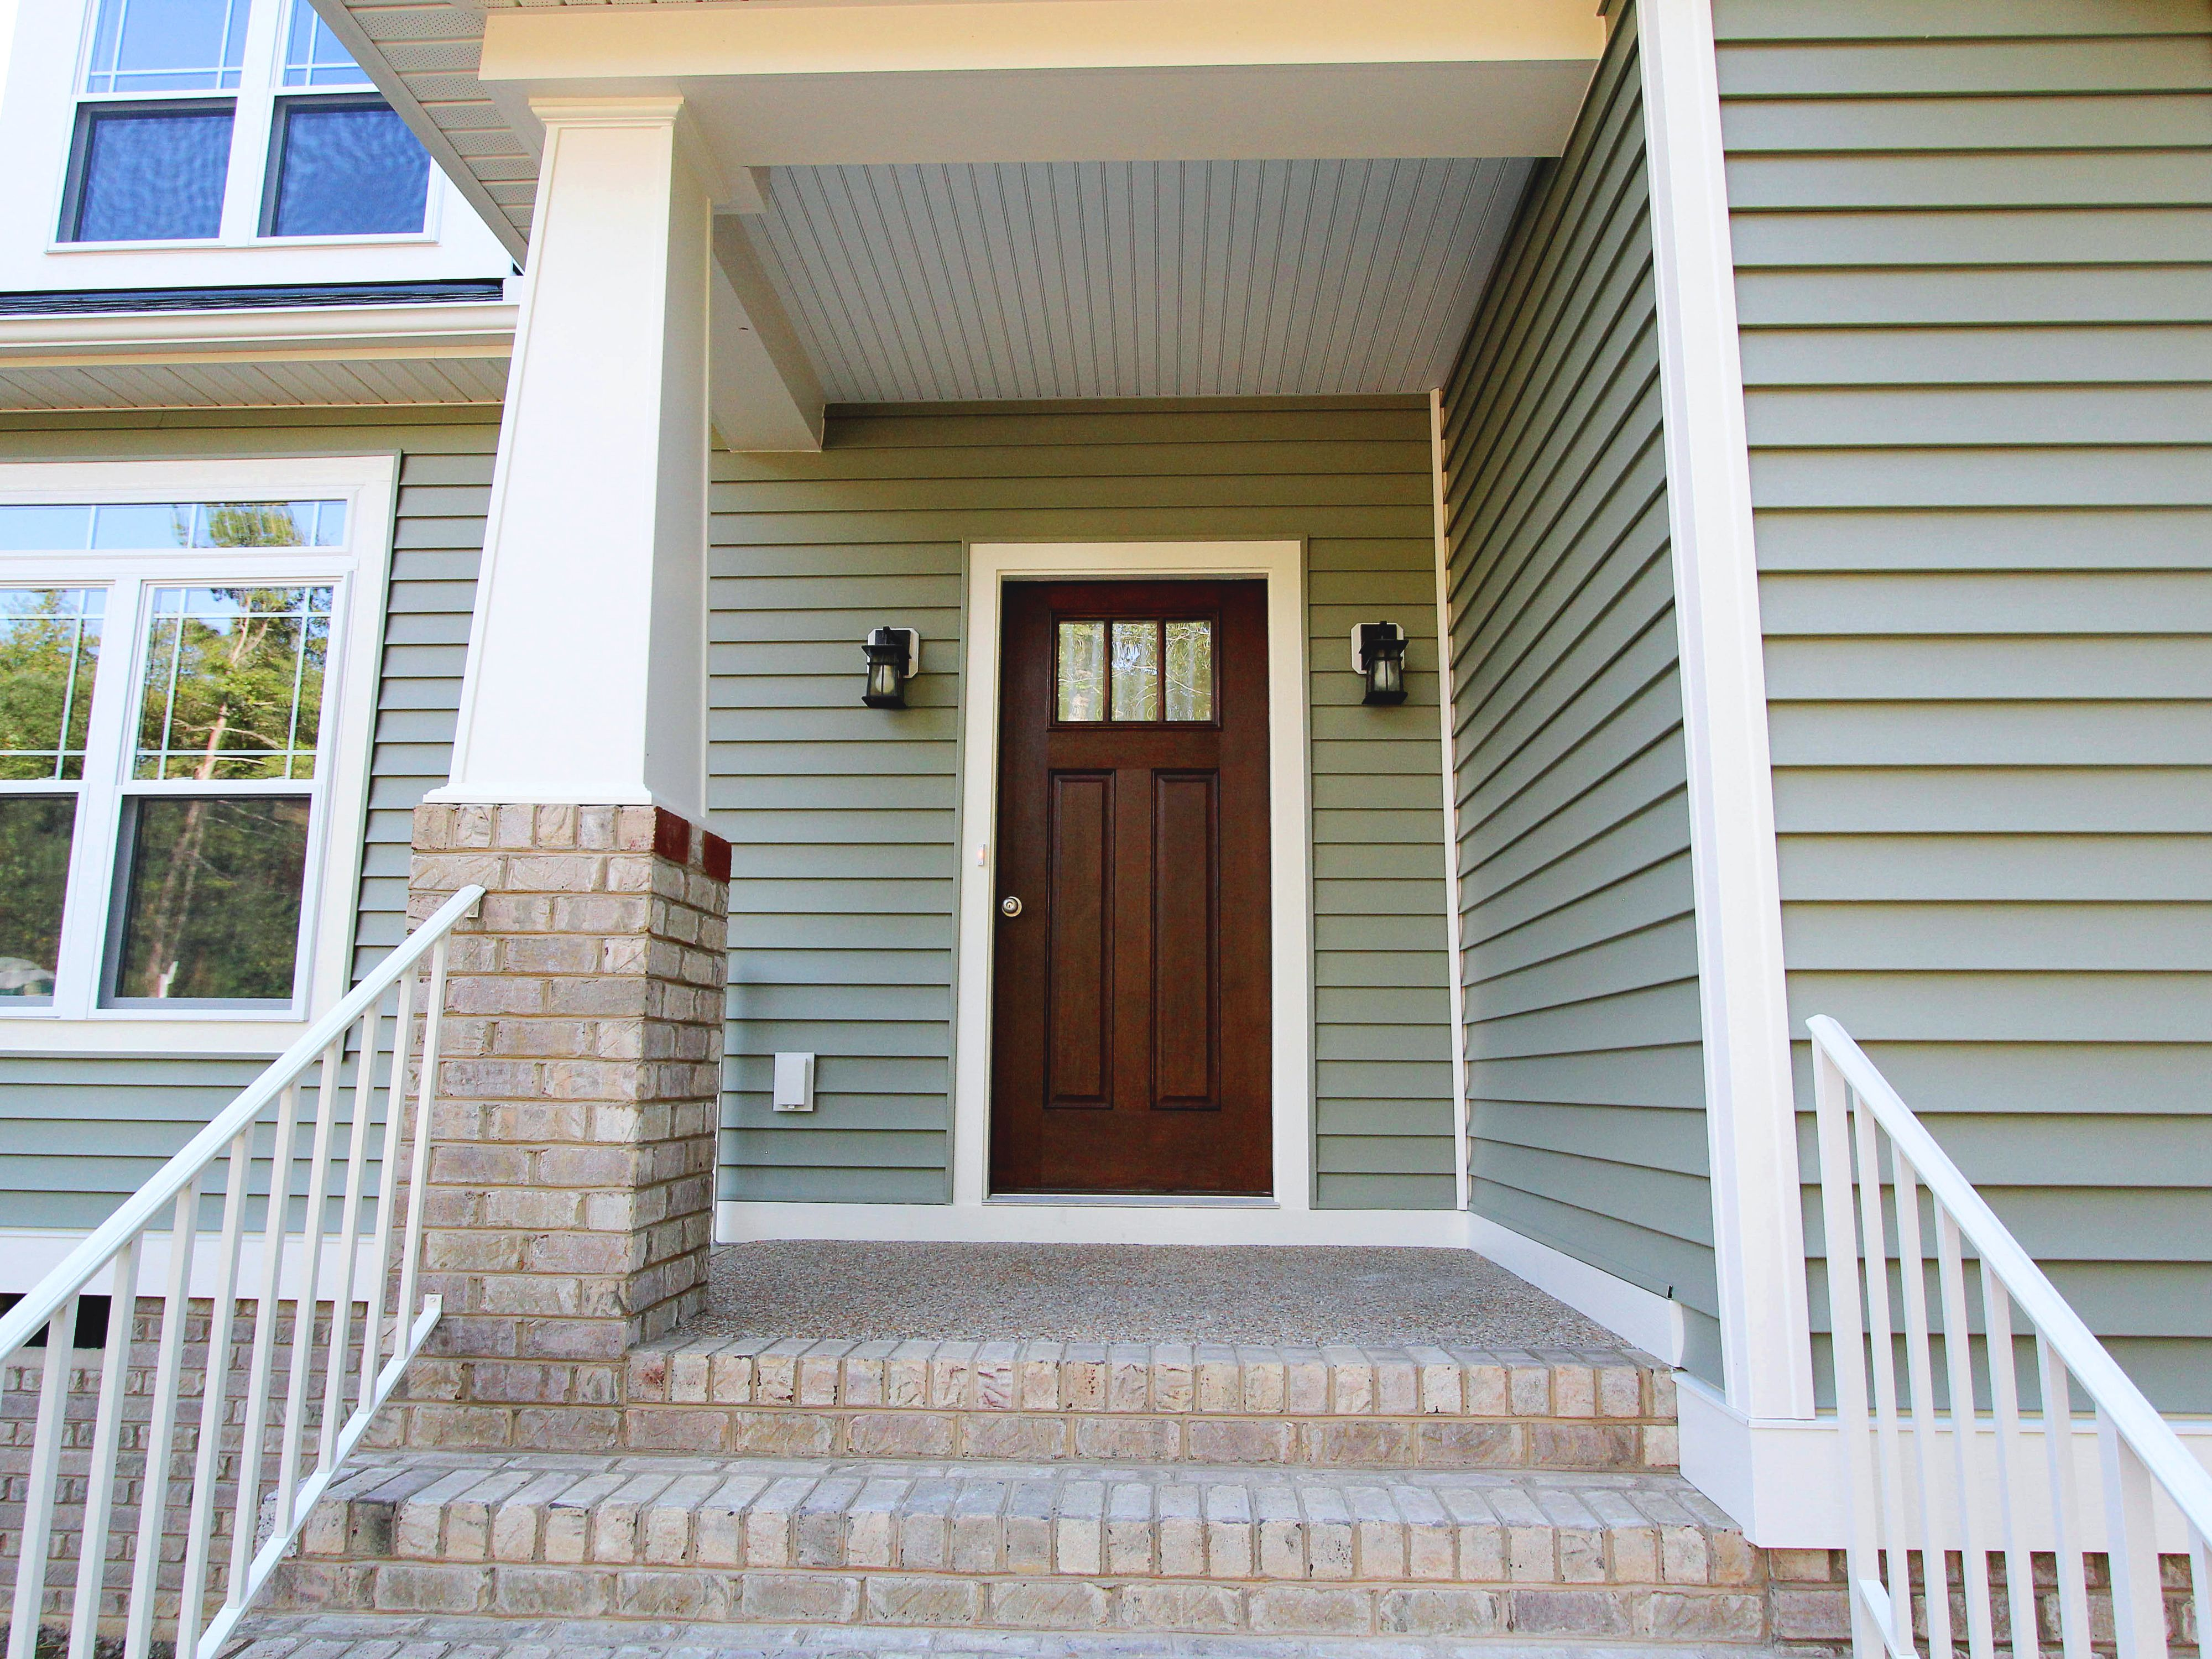 Classic Entryway With White Trim Sage Green Siding And A Wood Front Door Craftsman Style C Bald Green House Siding House Paint Exterior Green House Exterior